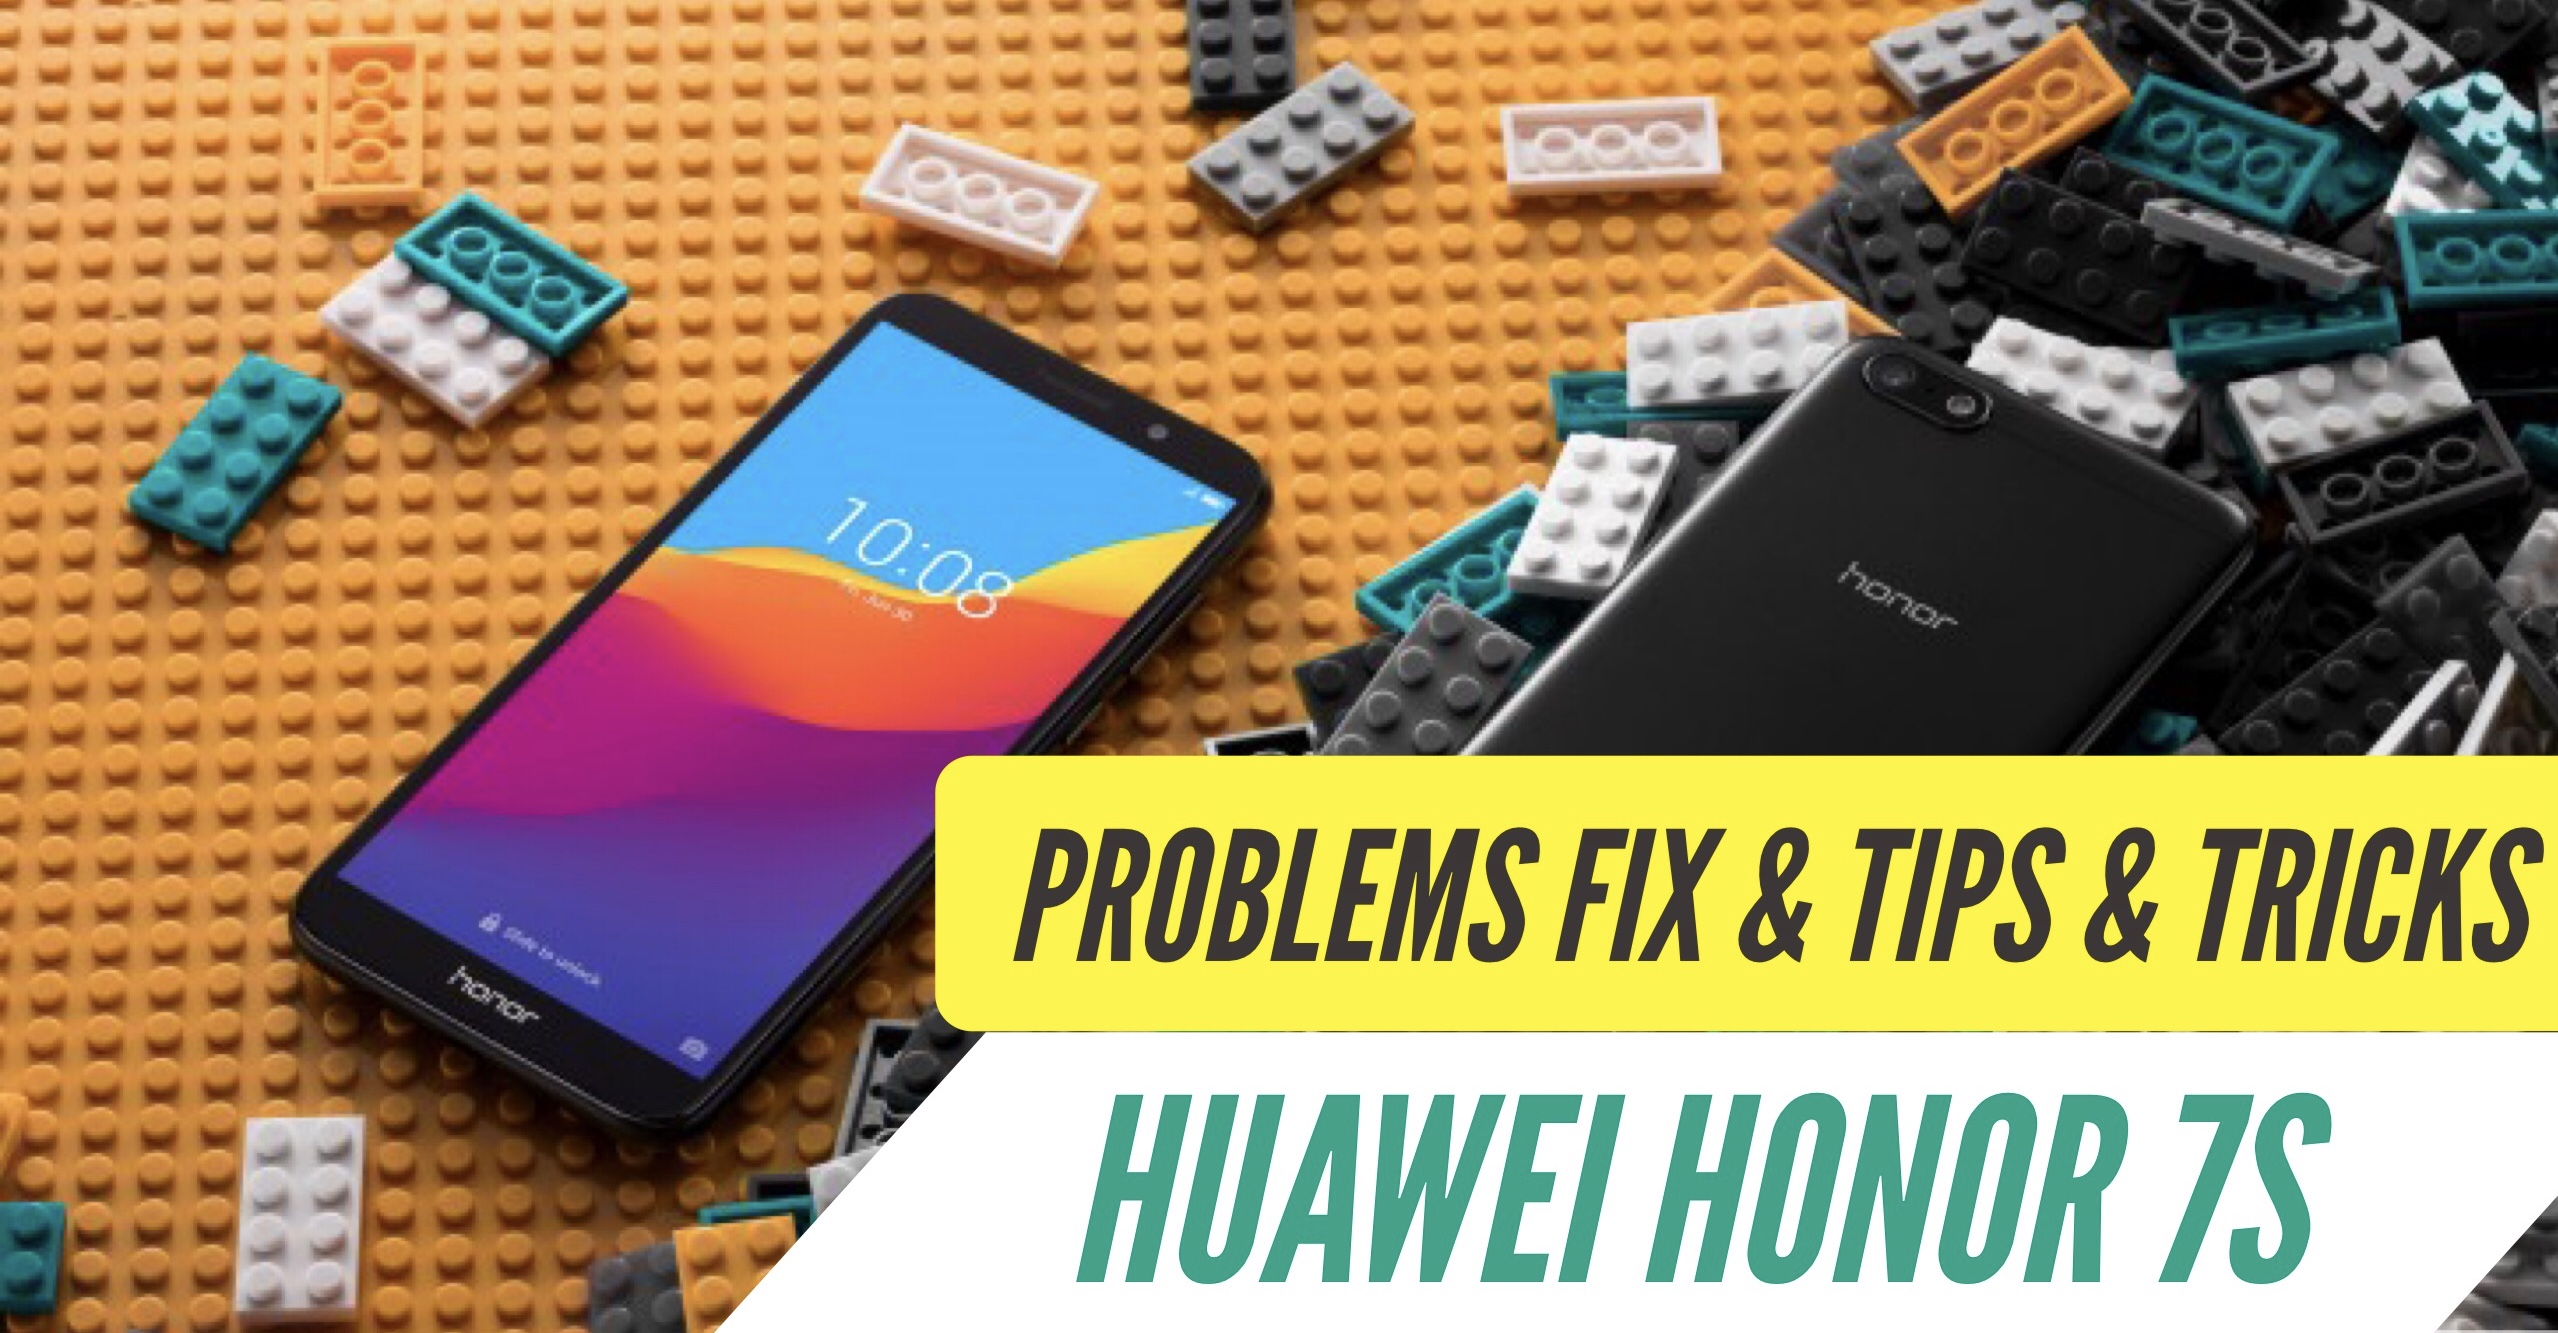 Huawei Honor 7S Problems & How to Fix Them: TIPS & TRICKS